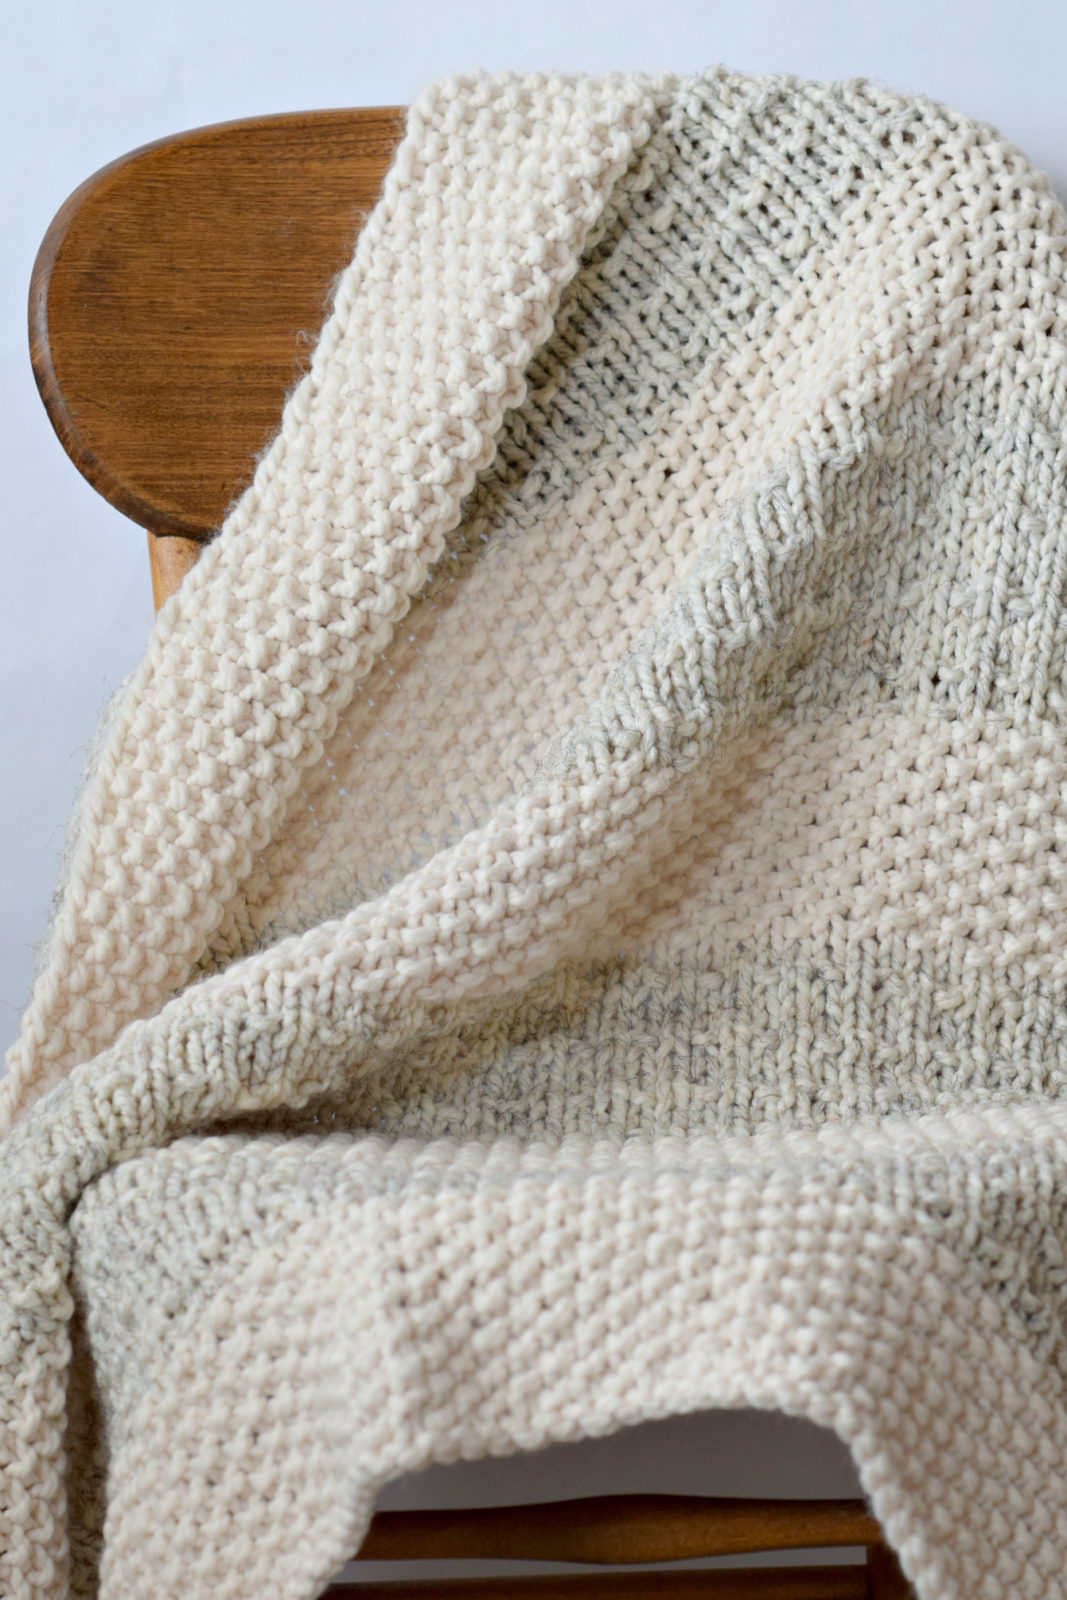 Easy Knitting Blanket Patterns : Easy Heirloom Knit Blanket Pattern   Mama In A Stitch